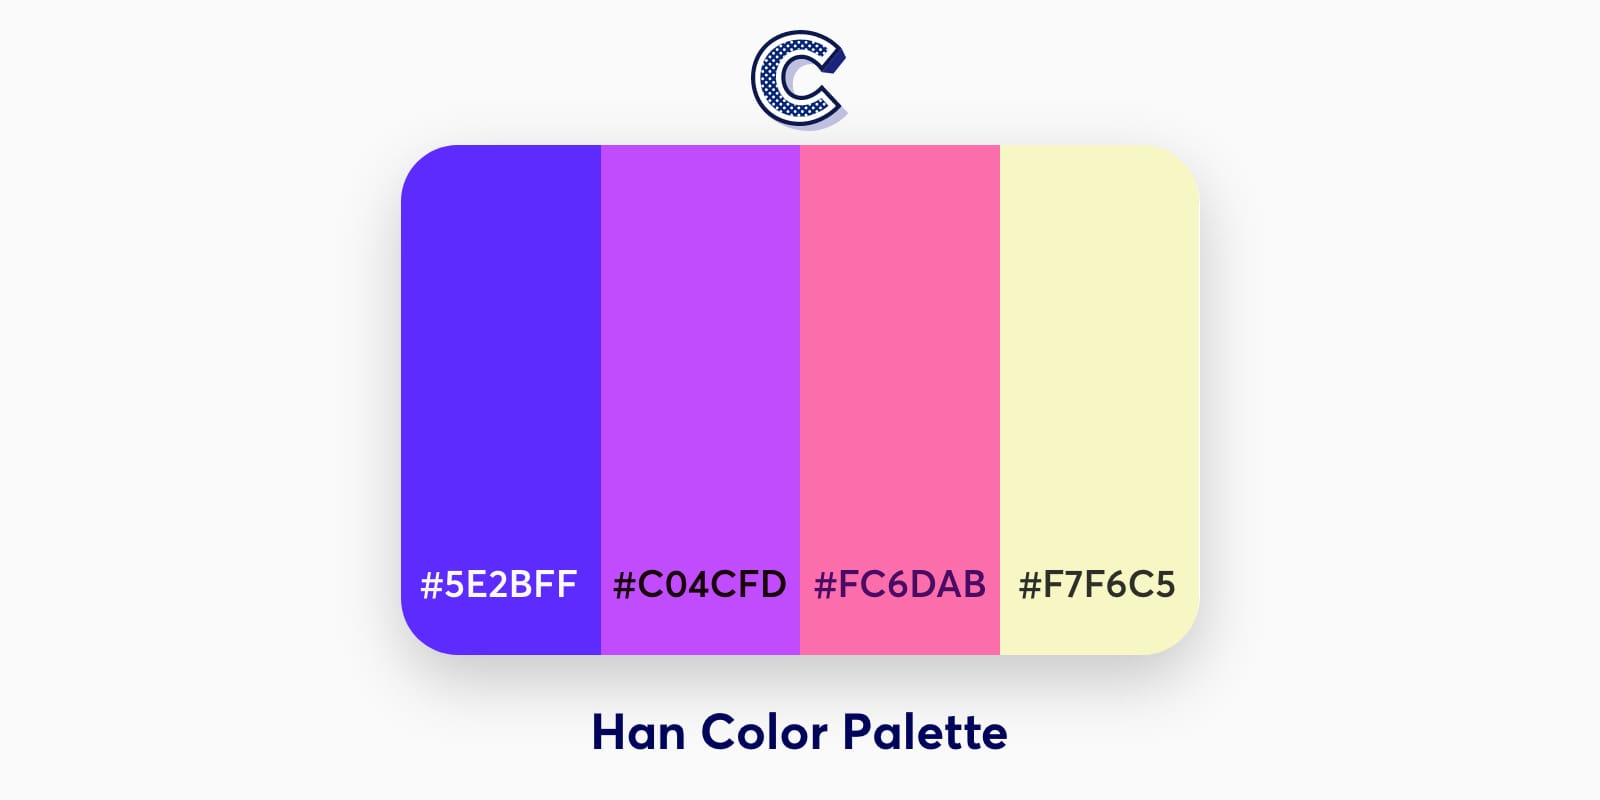 the featured image of han color palette